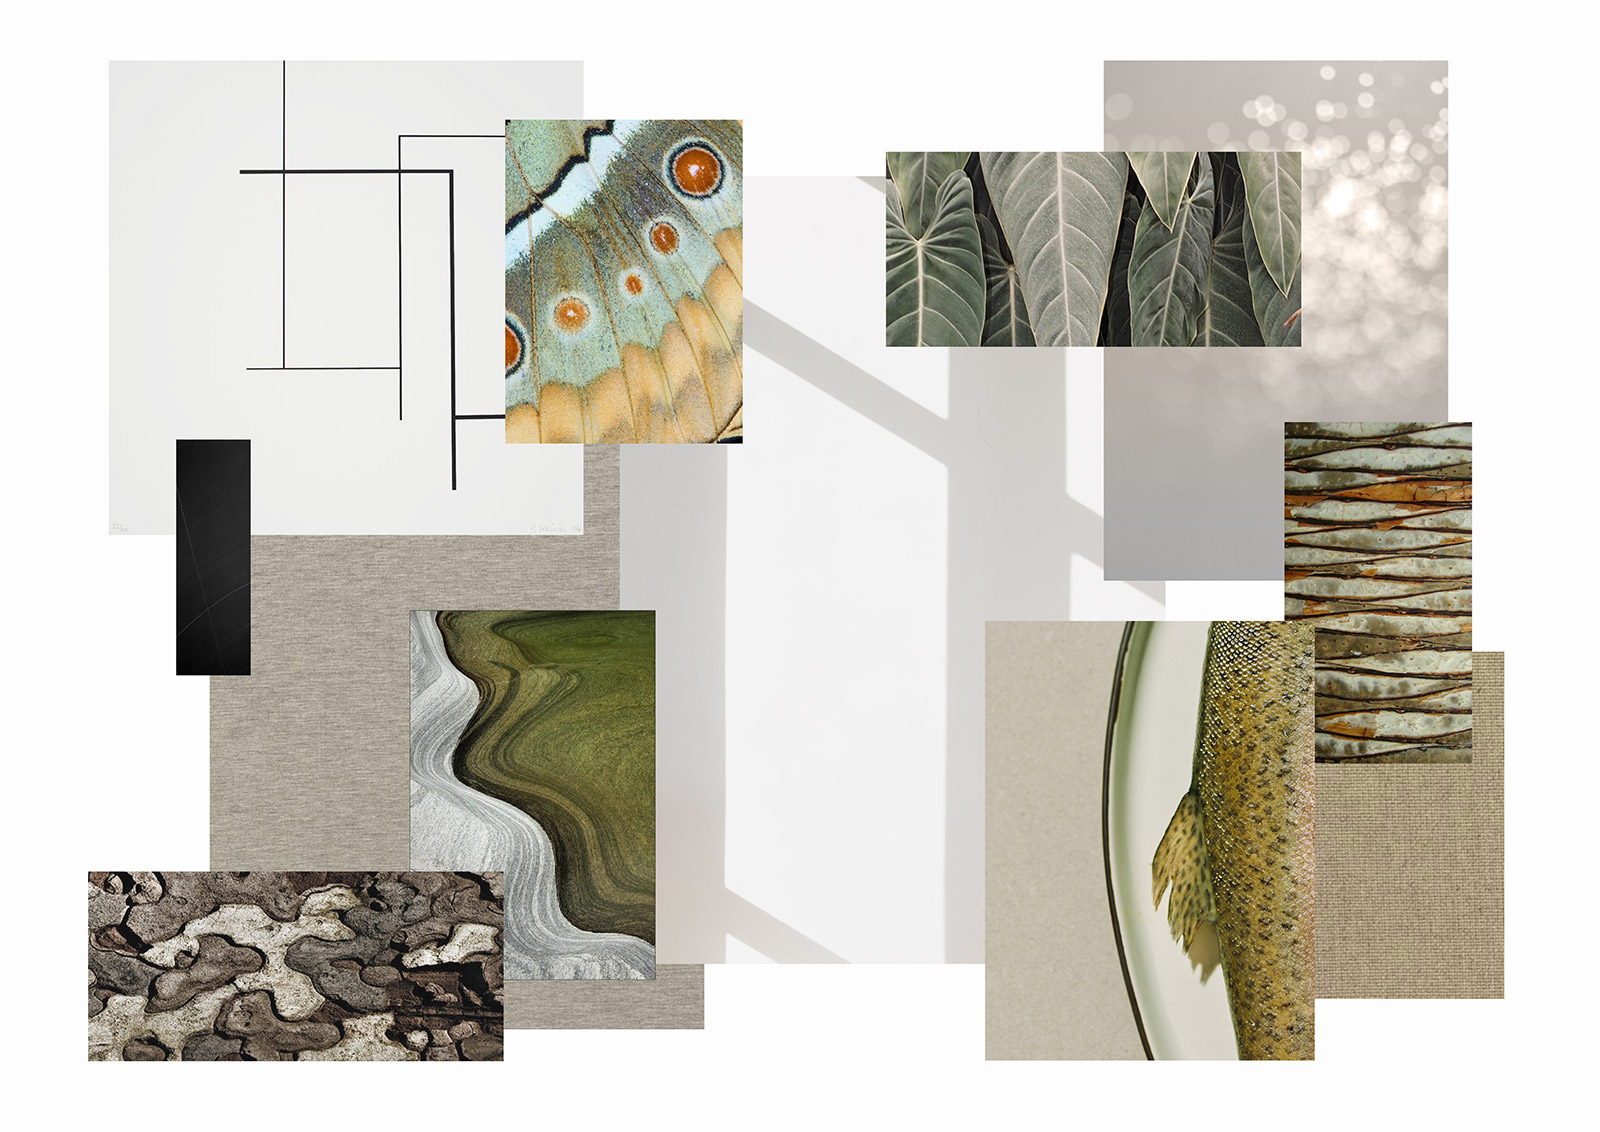 Studio Hazeldean interior design concept board